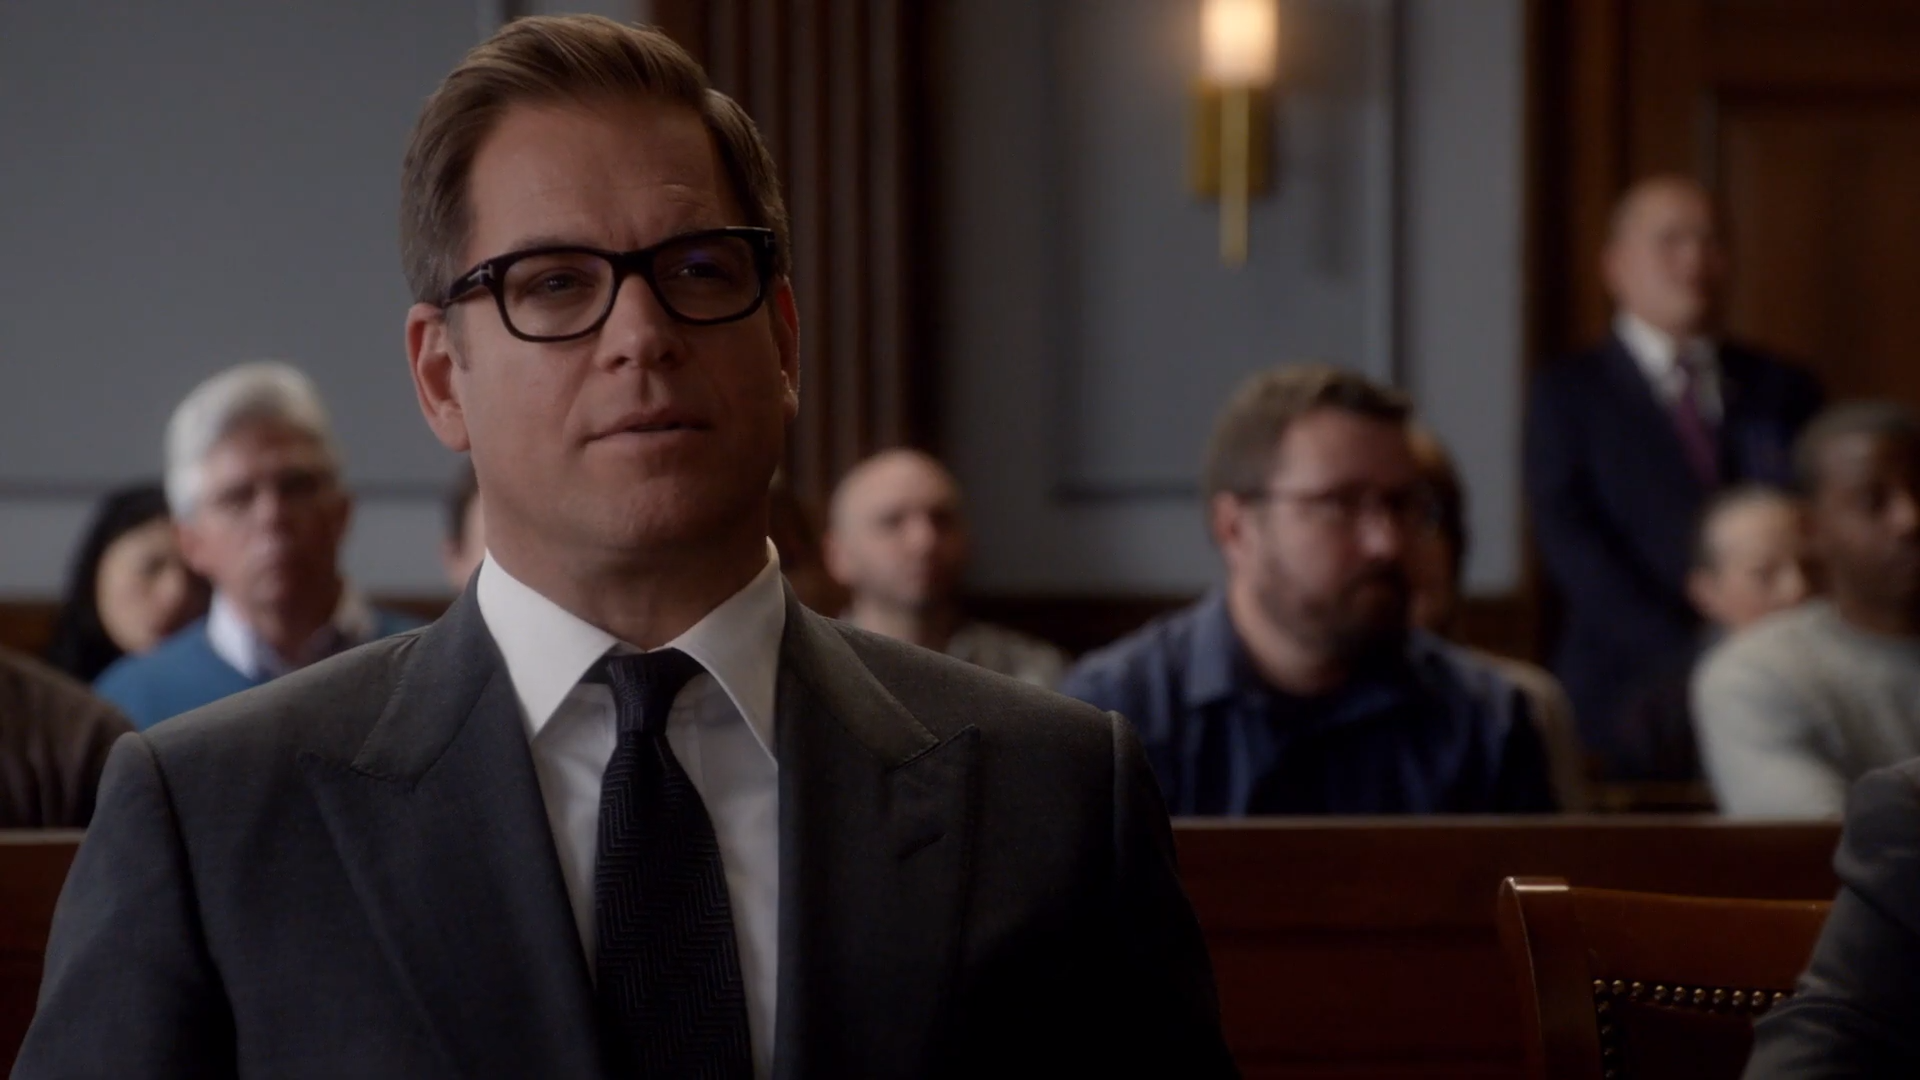 CBS's 'Bull' Renewed Despite Sexual Allegations Against Michael Weatherly